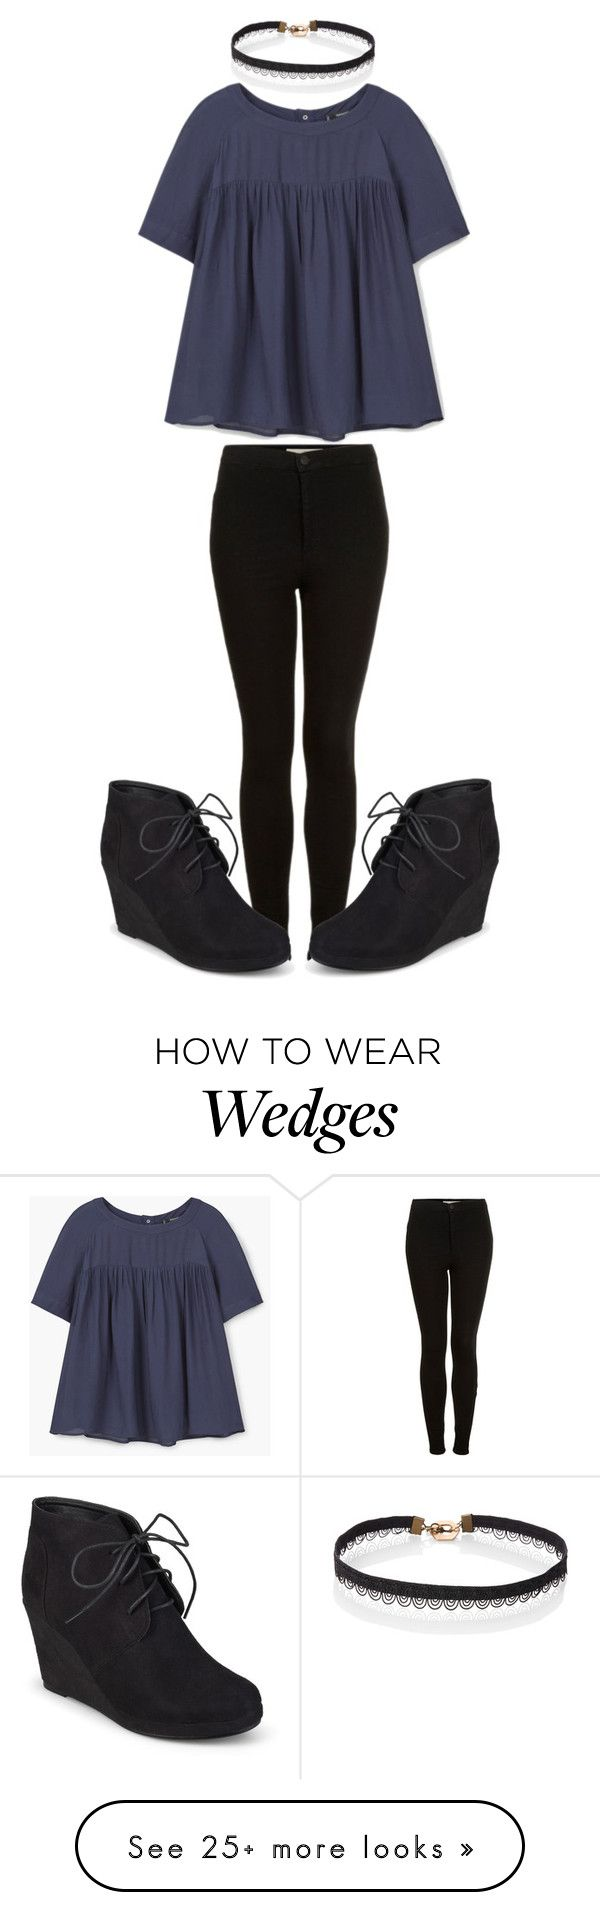 """""""Untitled #362"""" by sydthekyd01 on Polyvore featuring Topshop, MANGO and Journee Collection"""